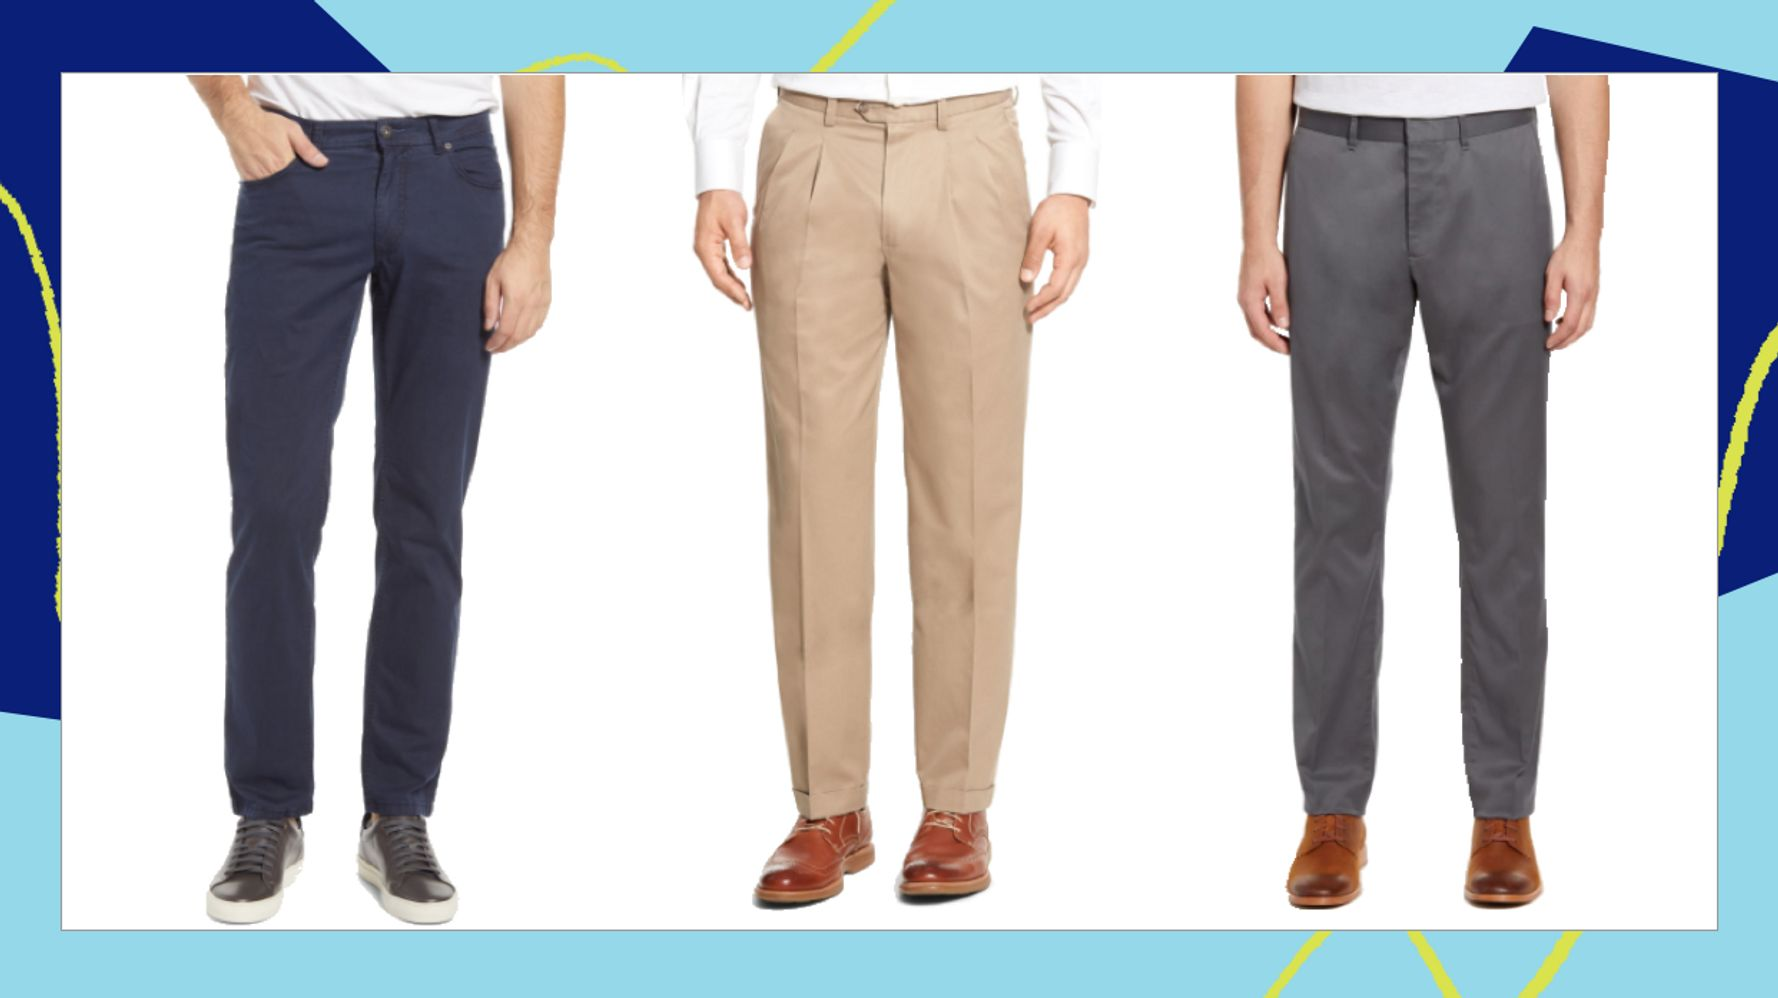 There Are Lots Of Comfortable Men's Dress Pants In Nordstrom's Anniversary Sale 1